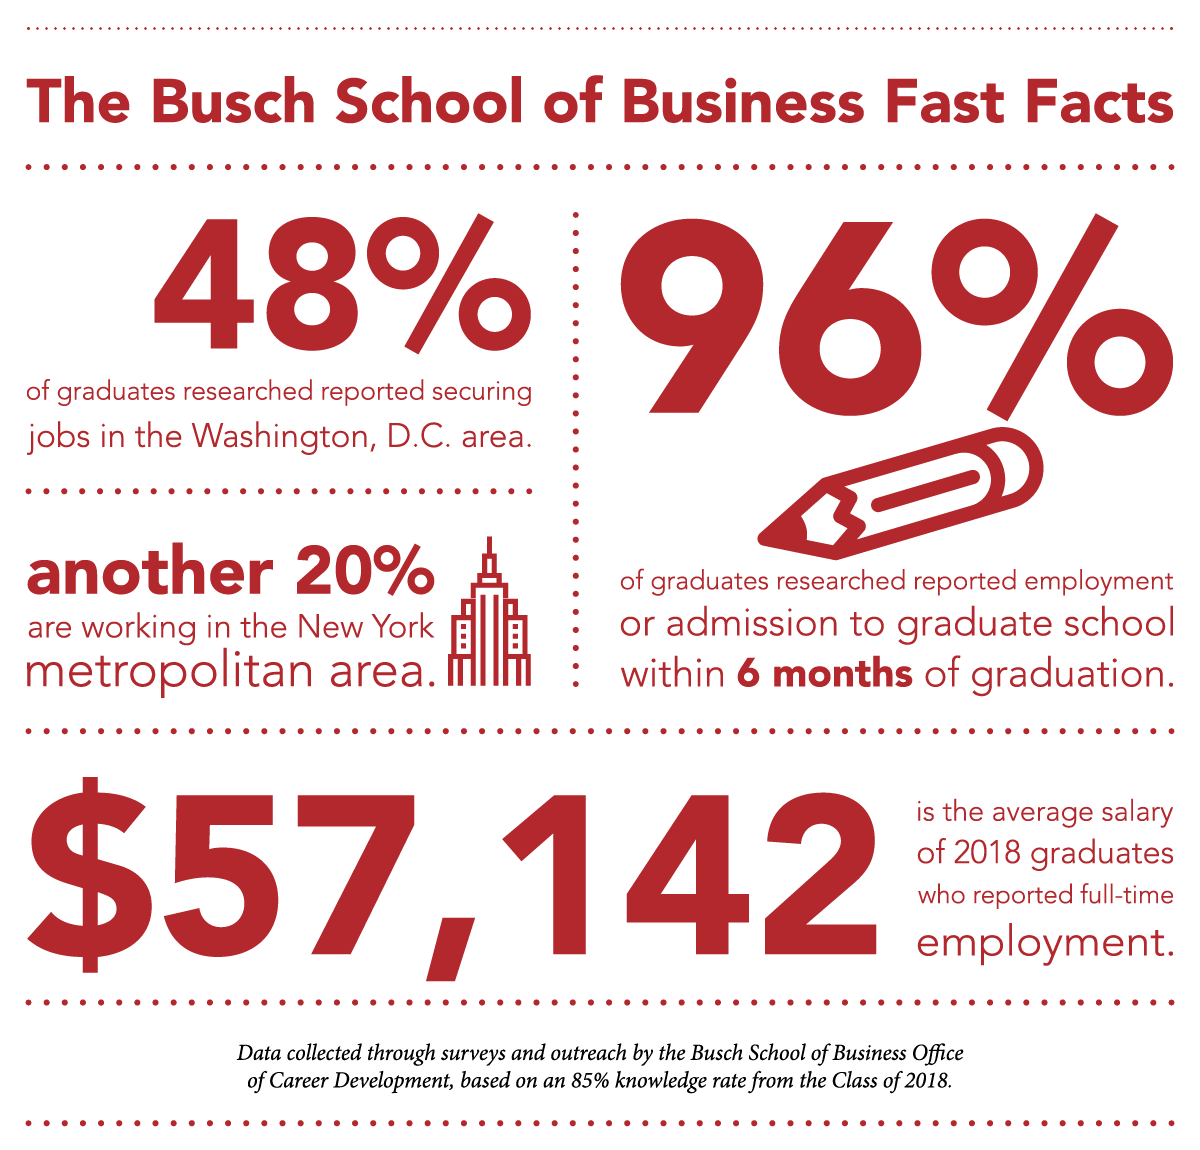 The Busch School of Business Fast Facts. 48% of graduates secured jobs in the Washington, D.C. area. Another 20% are working in the New York metropolitan area. 96% of graduates reported employment or admission to graduate school within 6 months of graduation. $57,142 is the average salary of 2018 graduates who reported full-time employment. Data collected through surveys and outreach by the Busch School of Business Office of Career Development, based on an 85% knowledge rate from the Class of 2018.